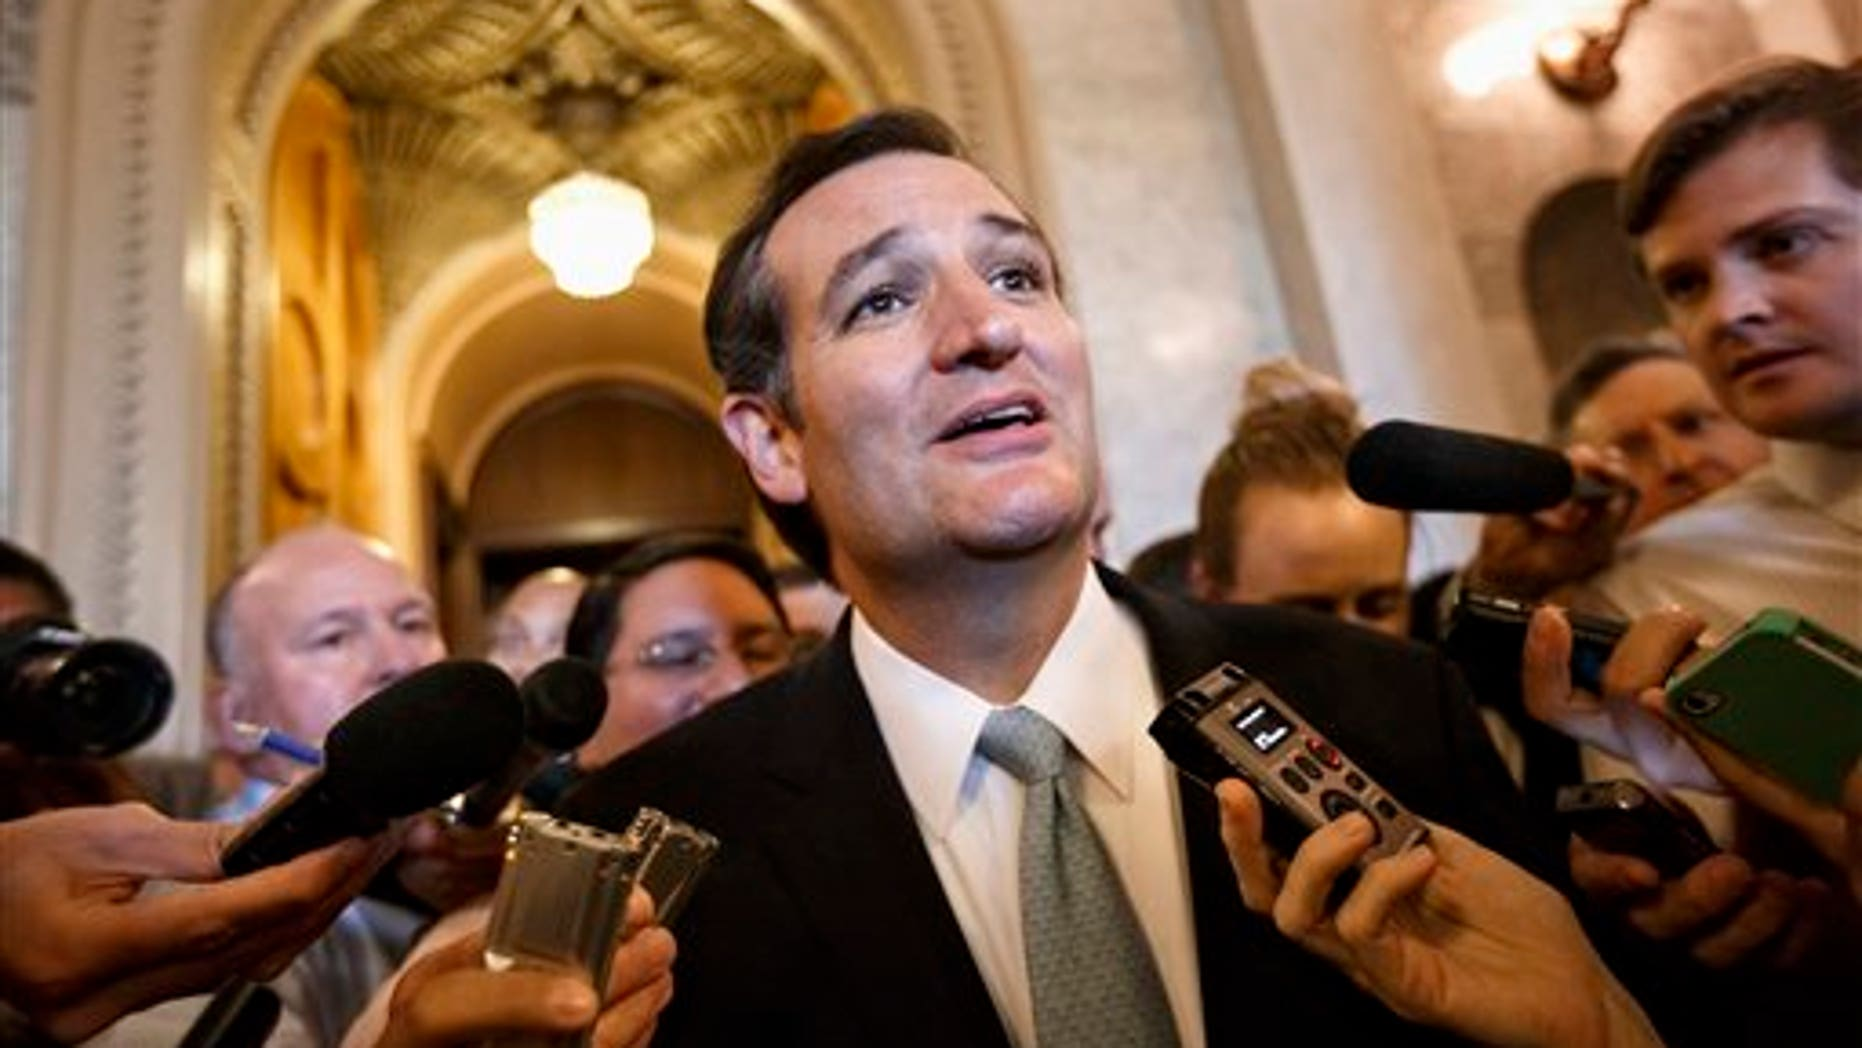 Sen. Ted Cruz talks to reporters as he emerges from the Senate Chamber on Capitol Hill in Washington, Wednesday, Sept 25, 2013.